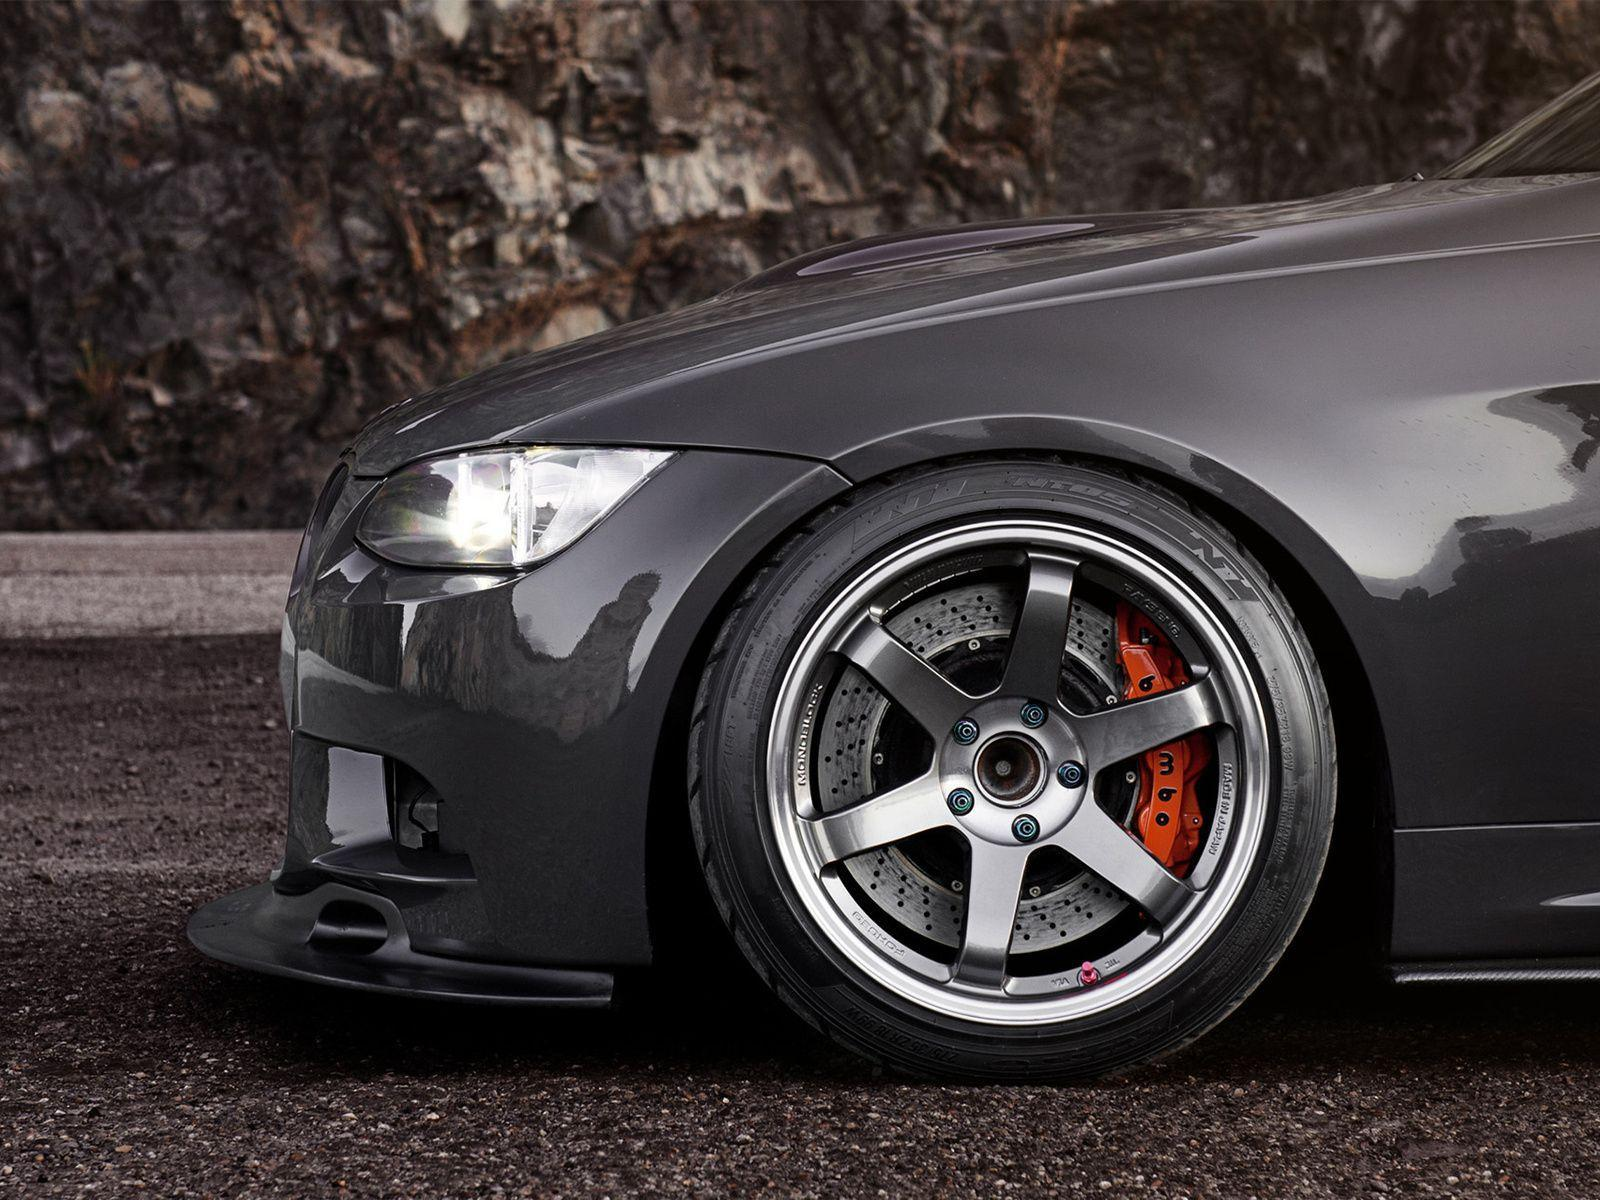 BMW E90 Wallpapers (30 Wallpapers) – HD Wallpapers